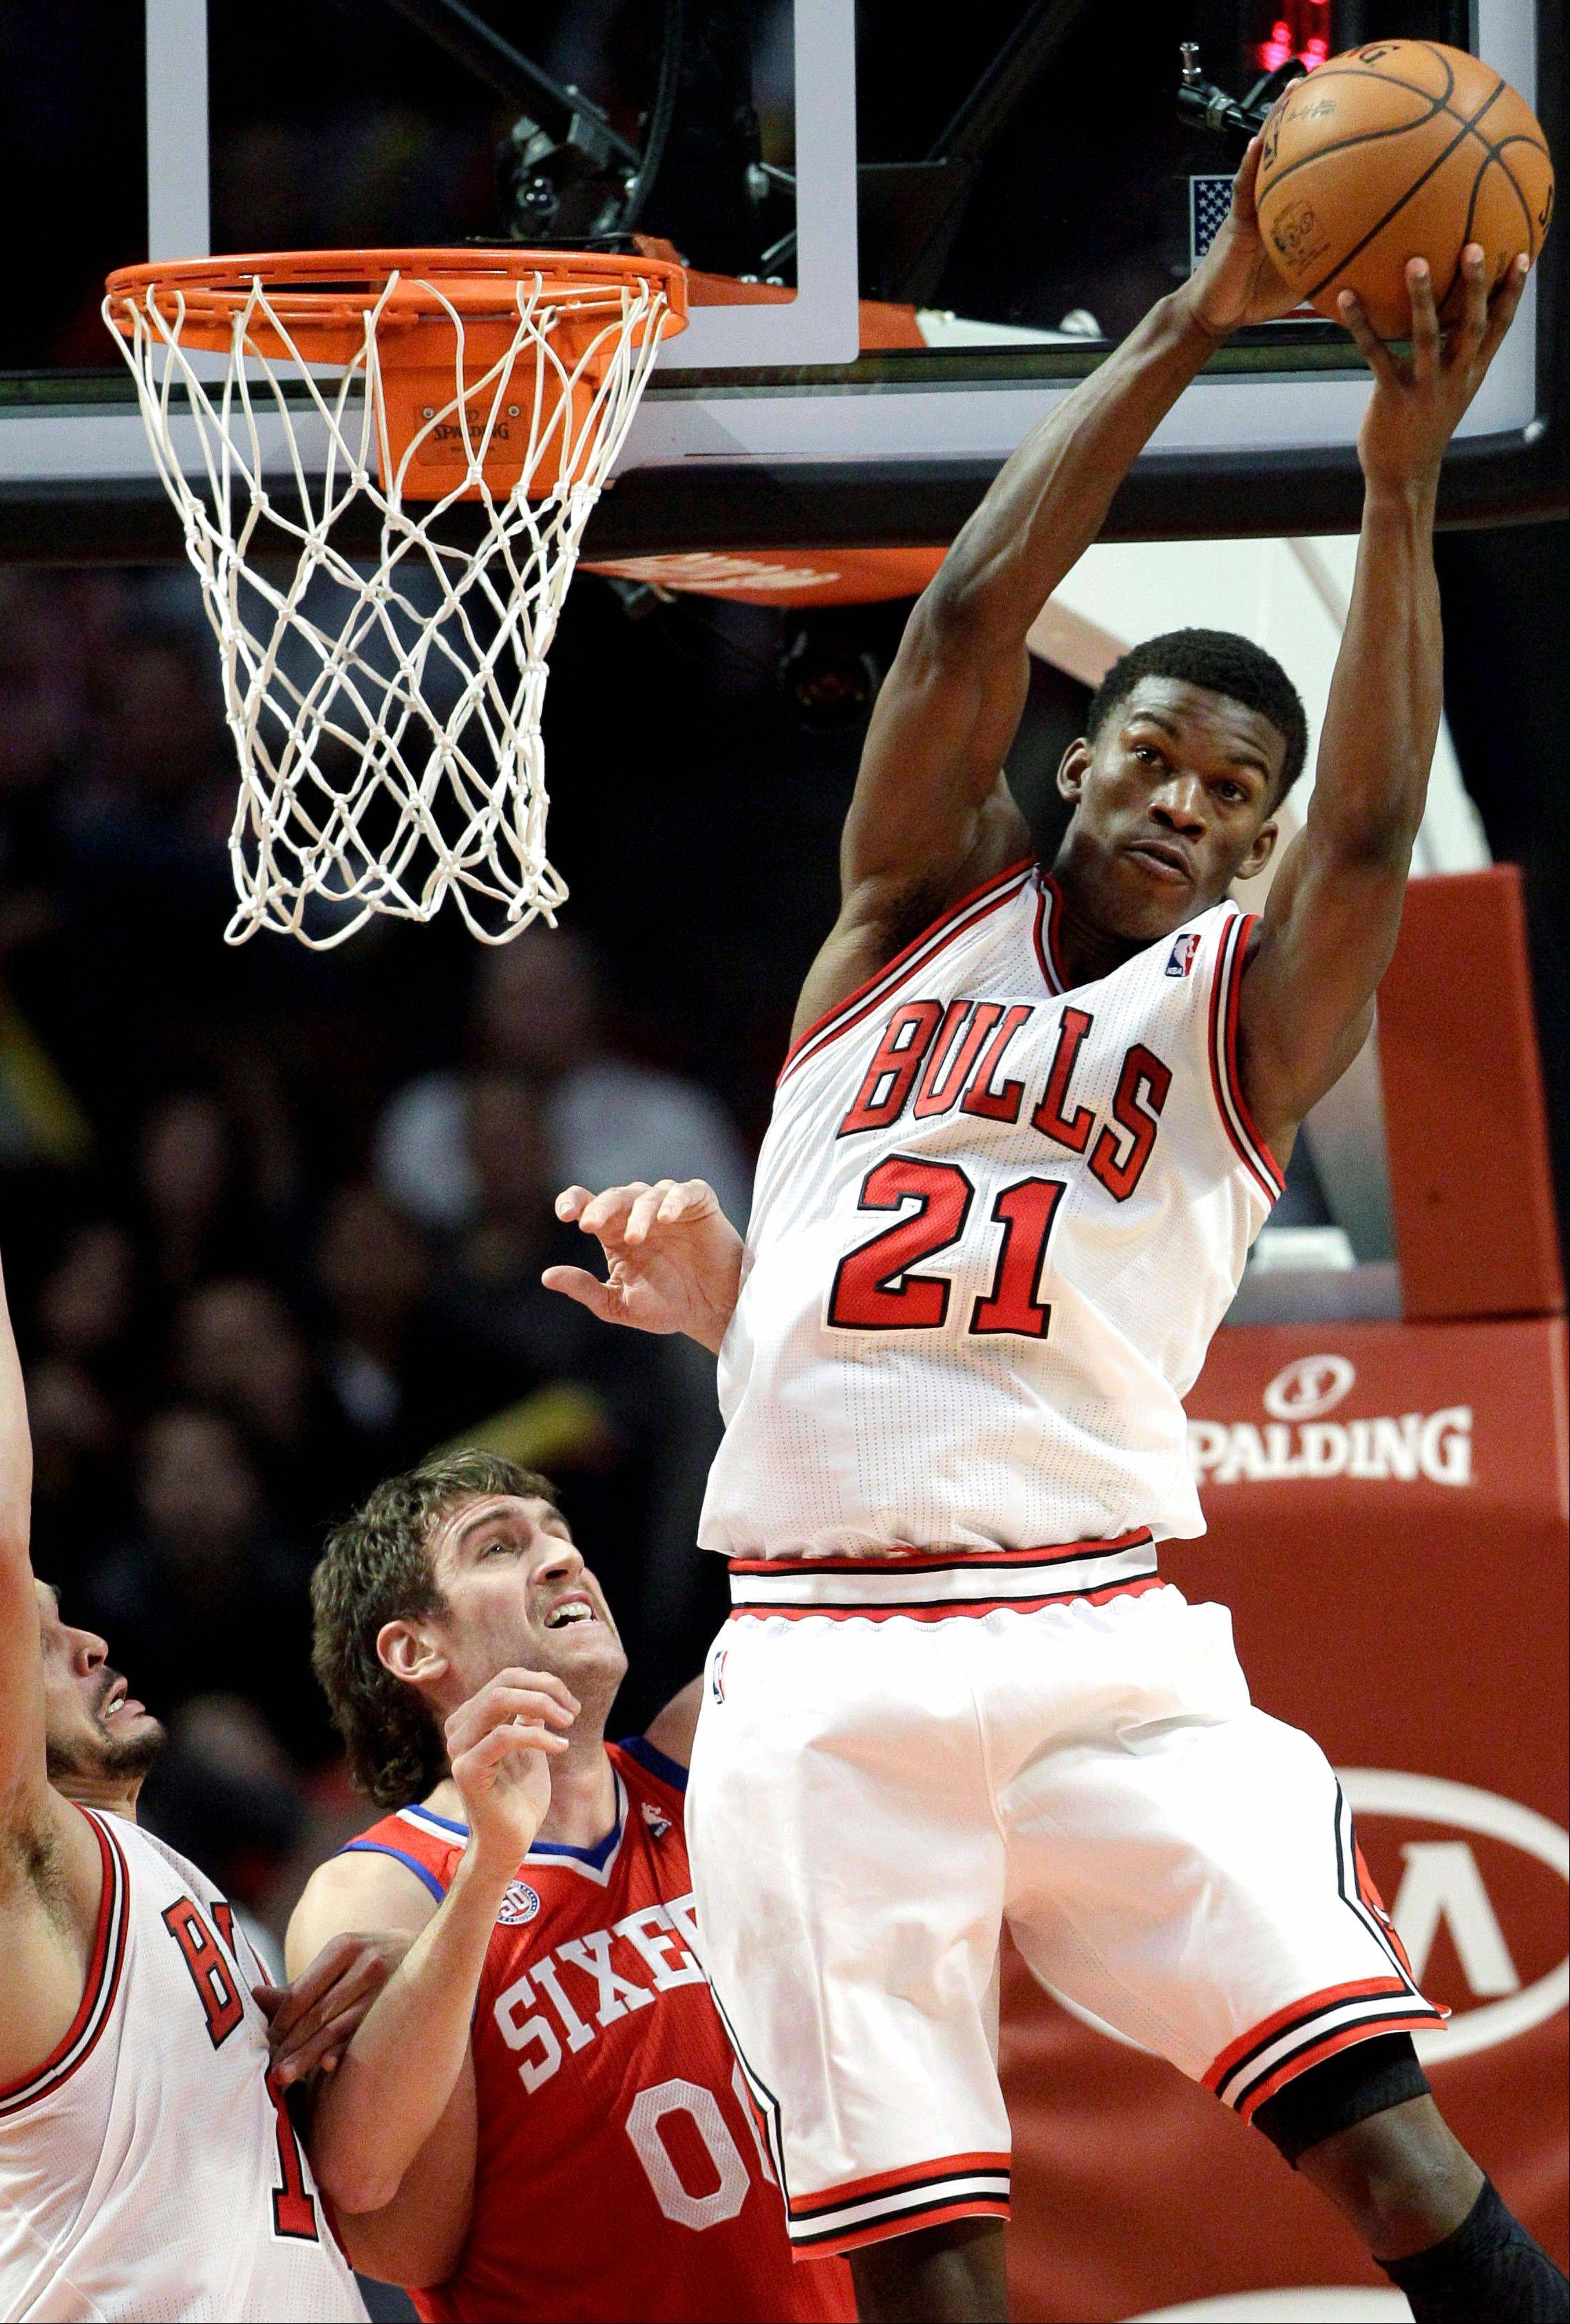 Jimmy Butler said he's comfortable coming off the bench and giving the Bulls a spark with teammate Taj Gibson.